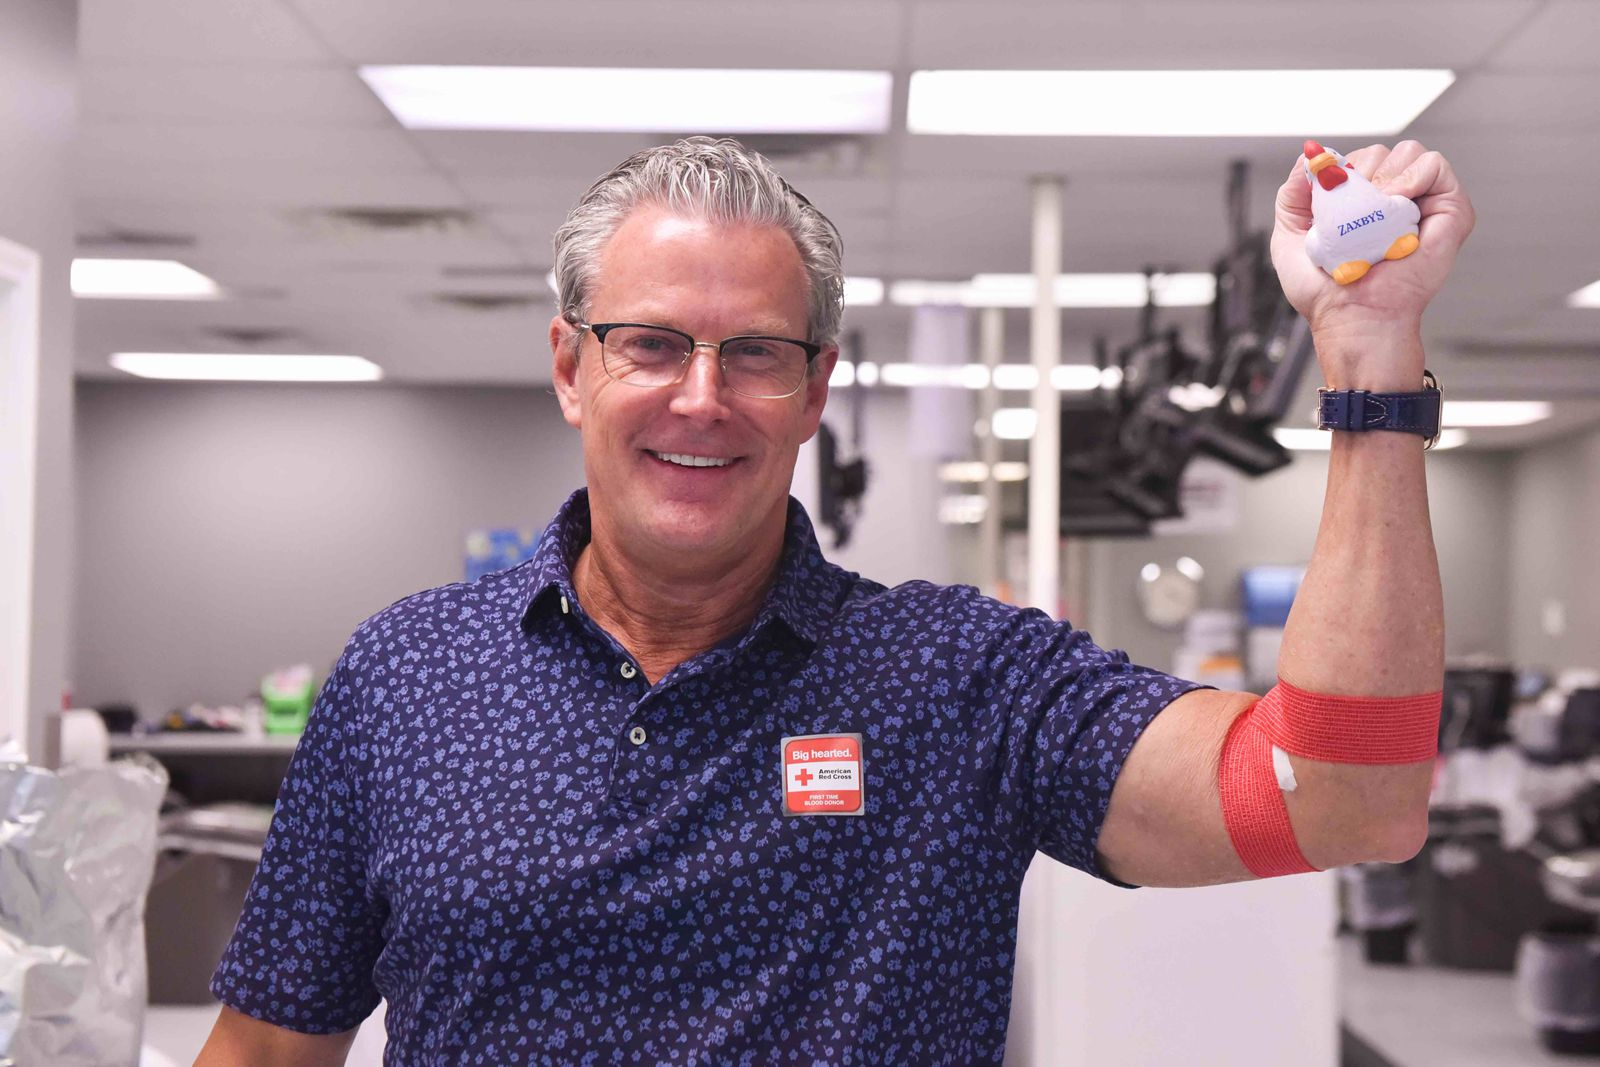 Zaxby's and American Red Cross Team Up To Drive Blood Donor Turnout in October